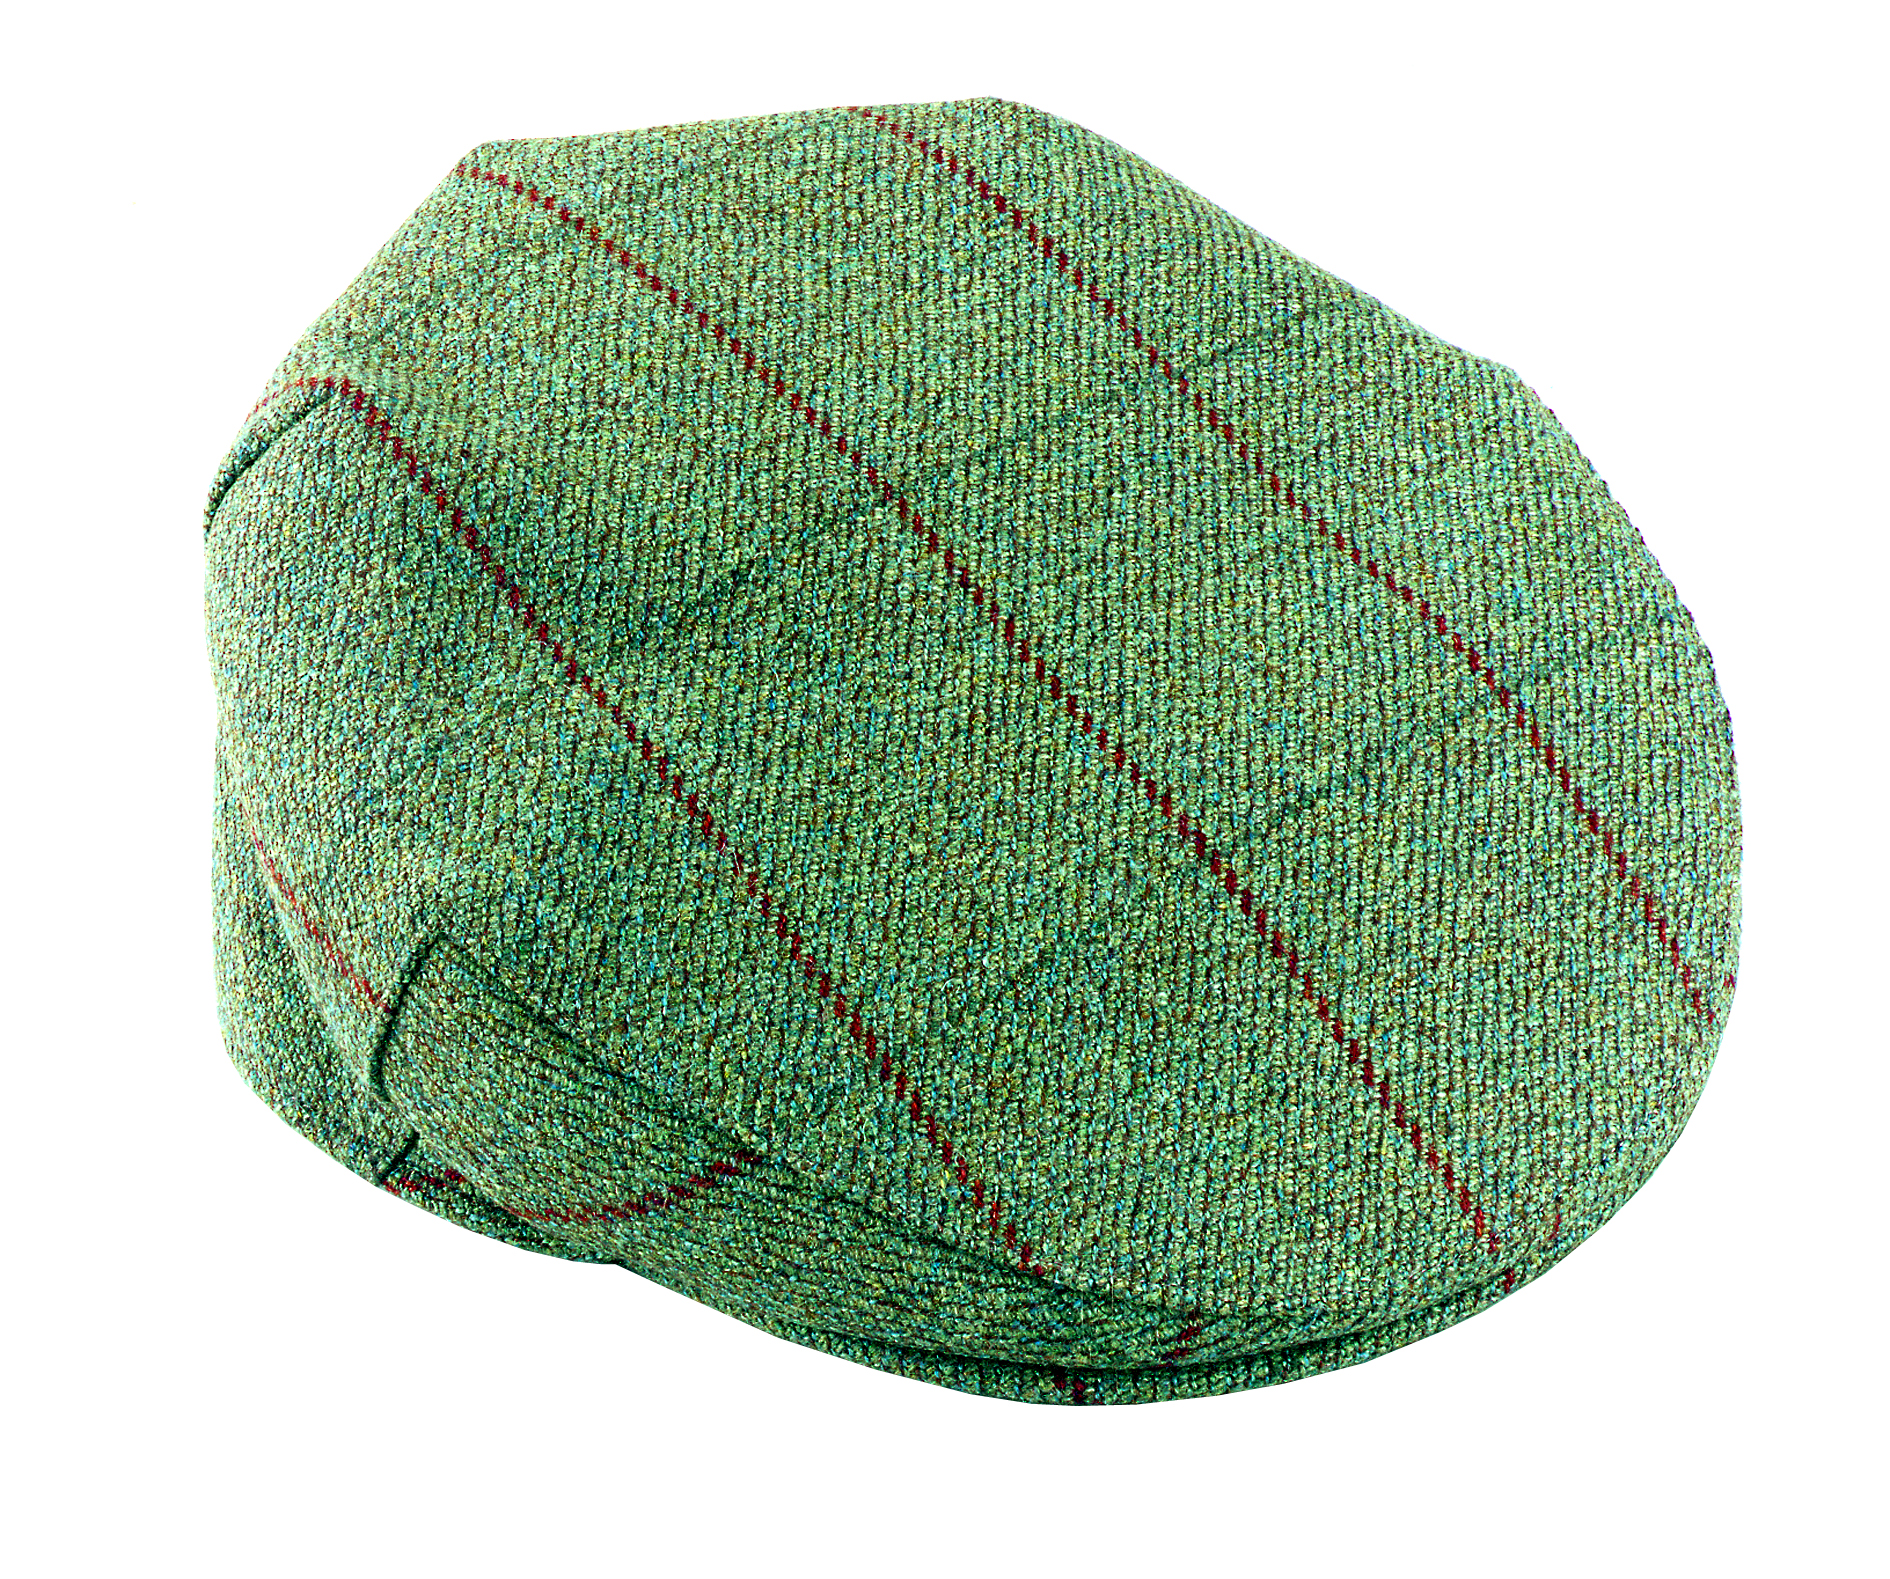 Foxhound tweed cap